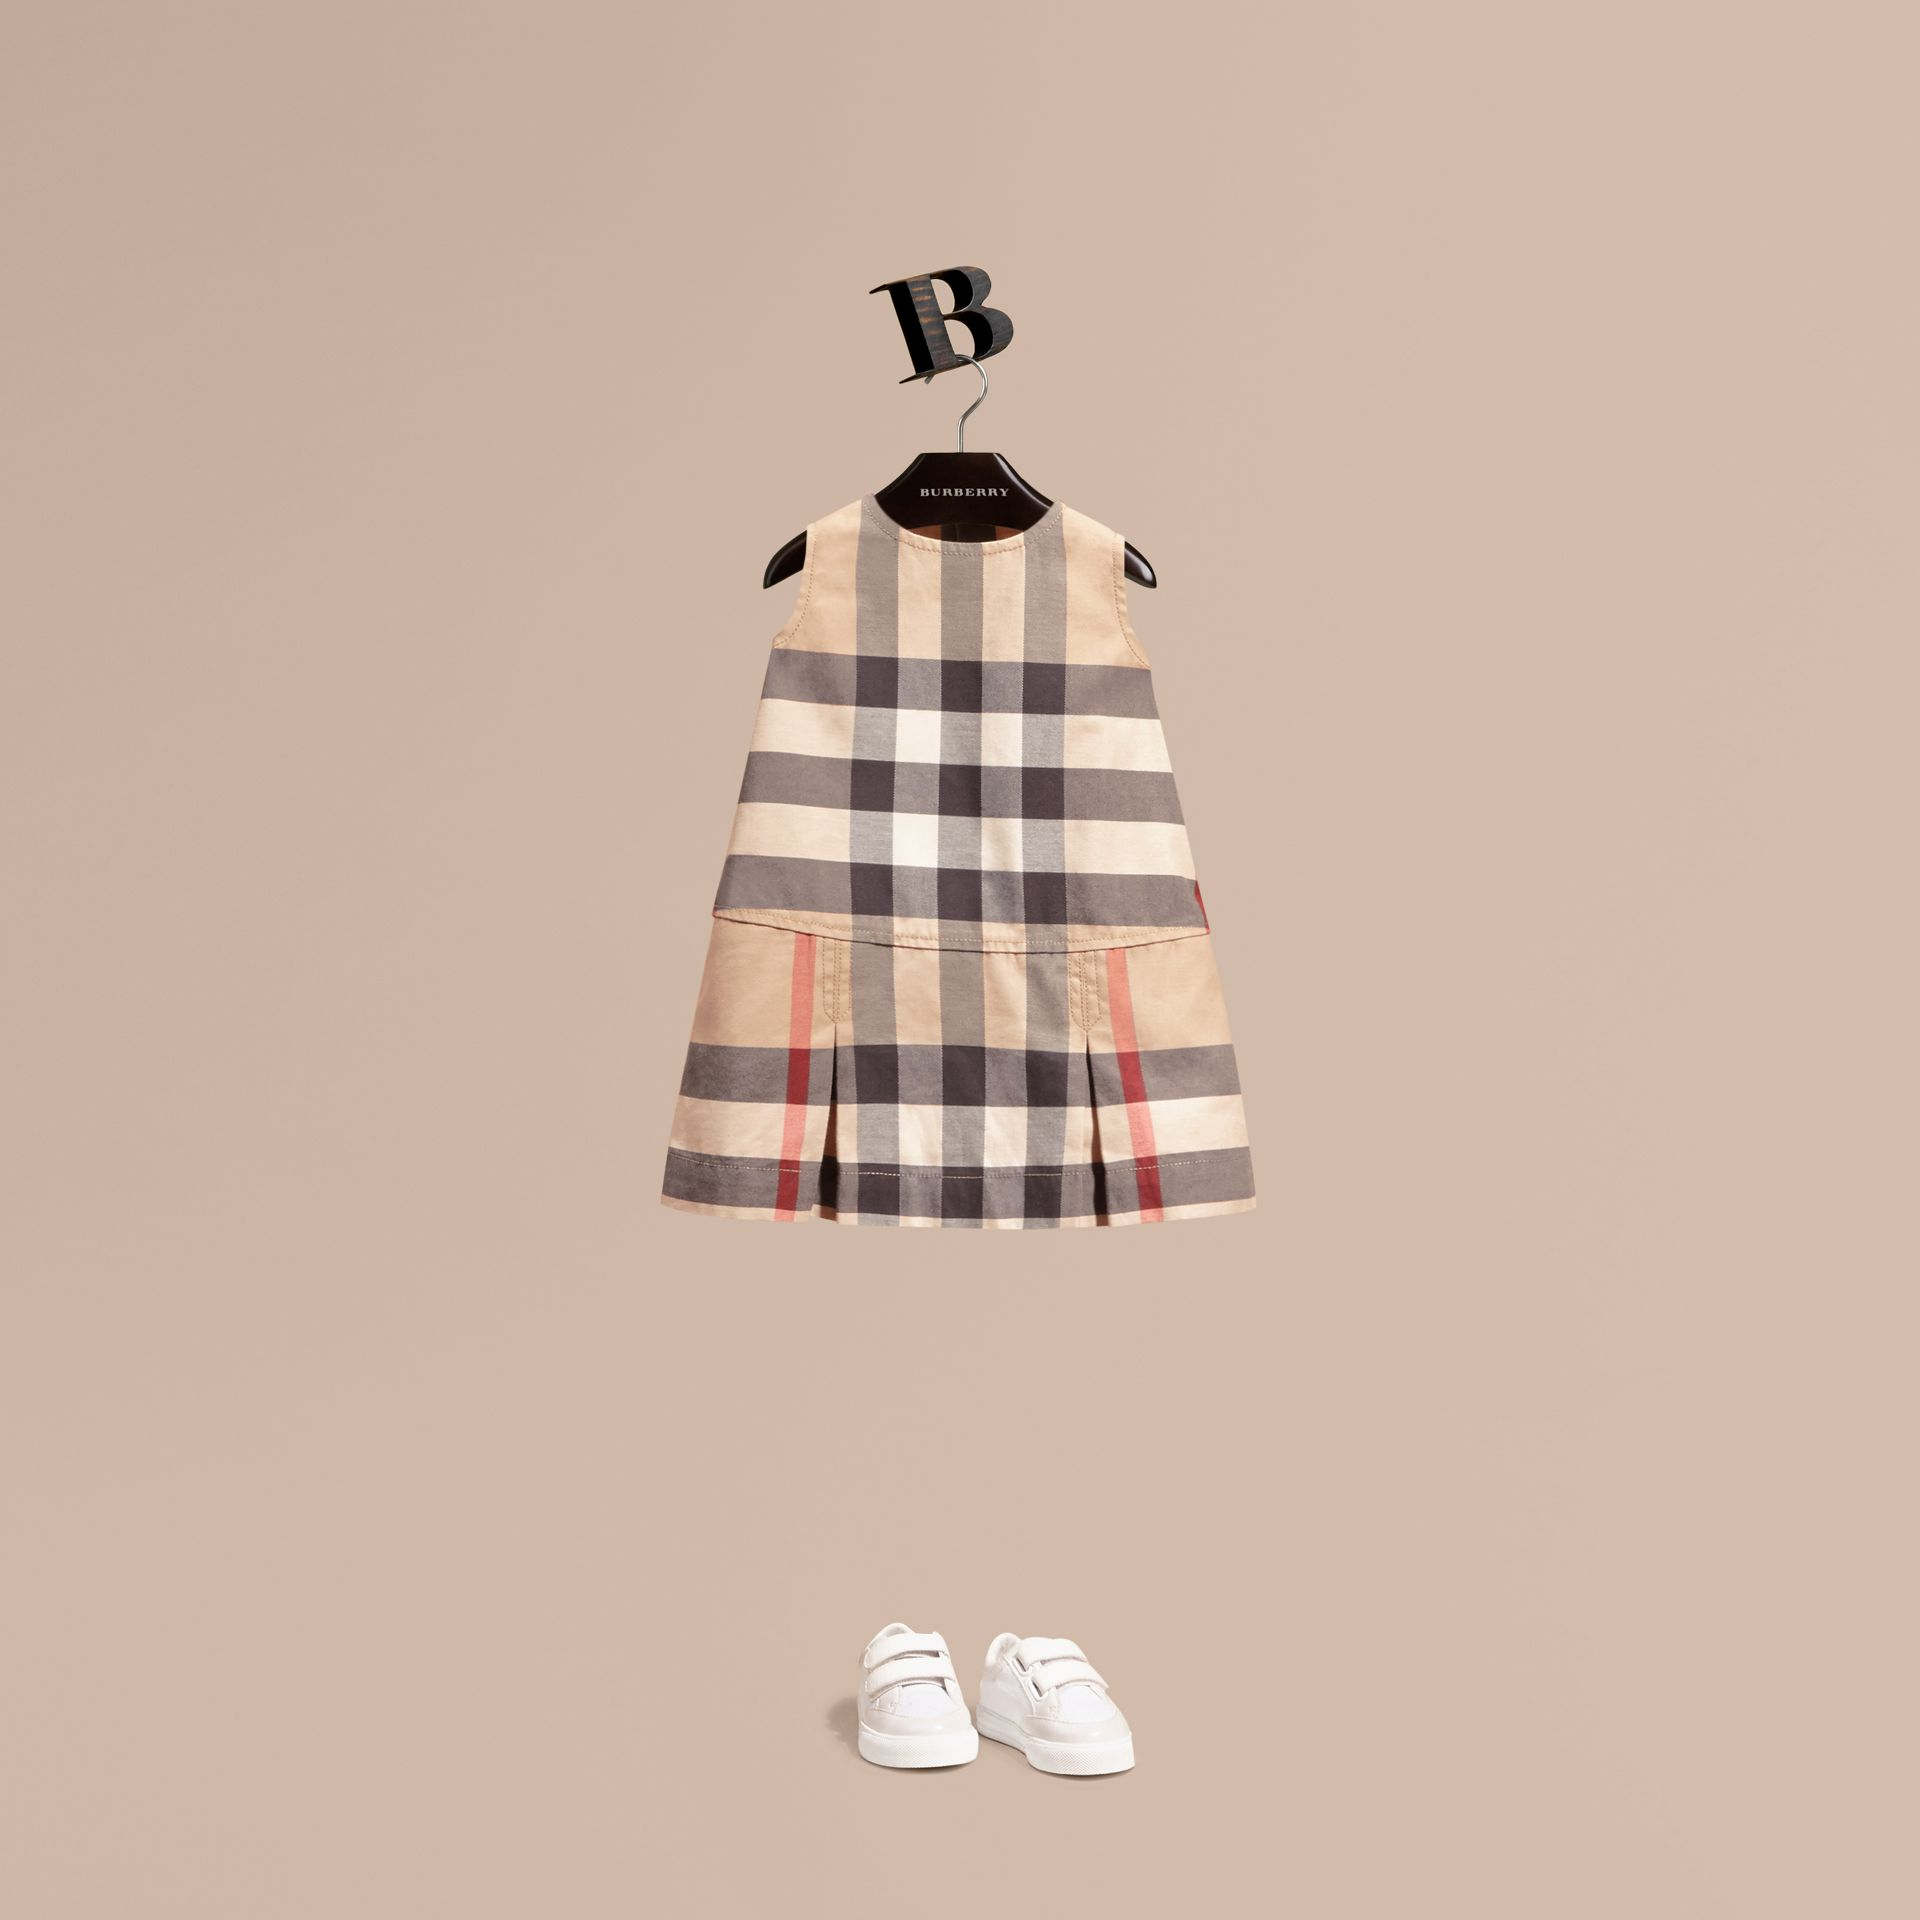 Washed Check Cotton Dress | Burberry - gallery image 1